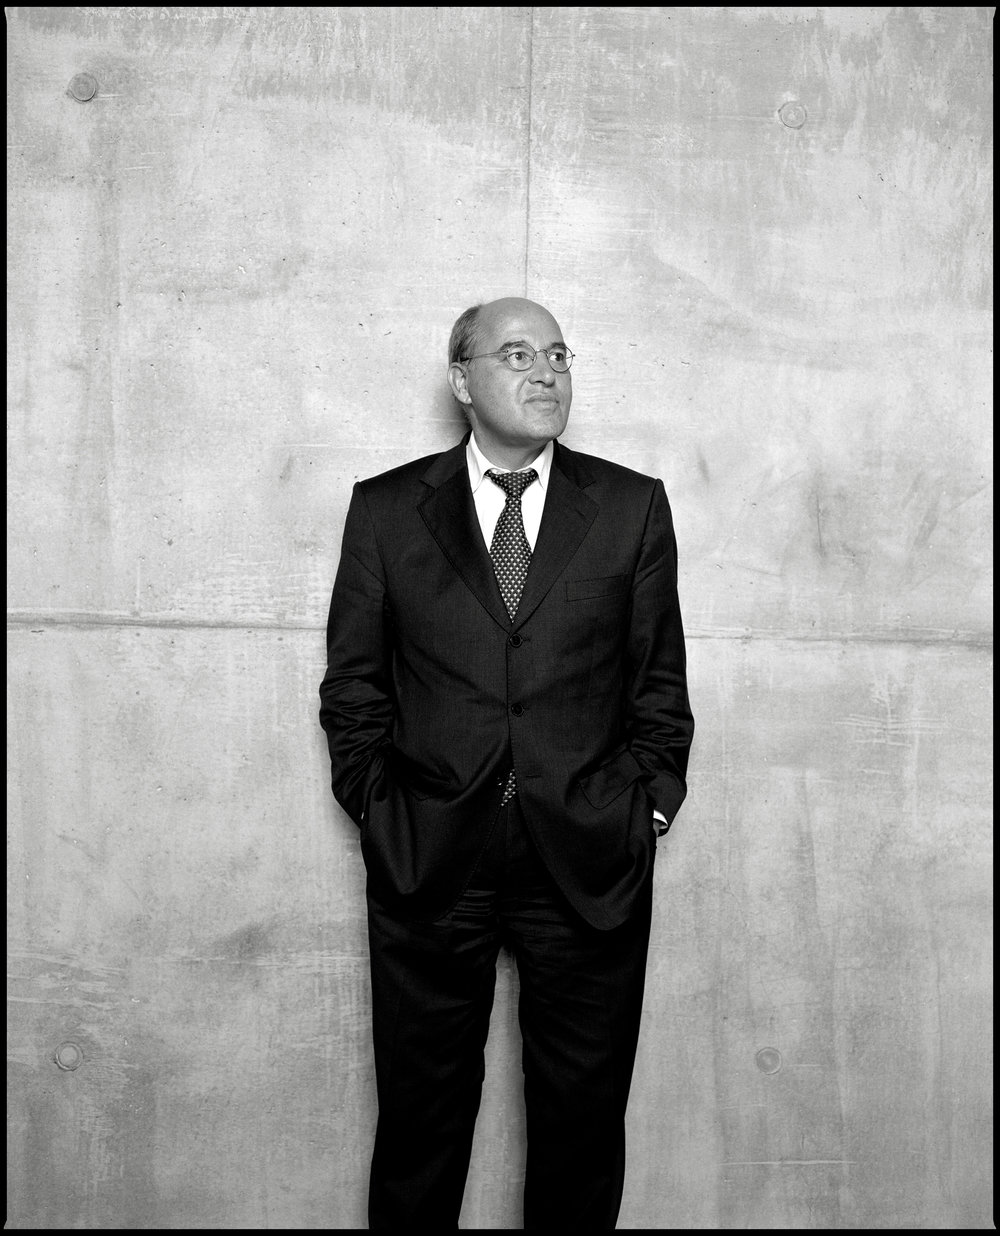 Gregor Gysi - Politician